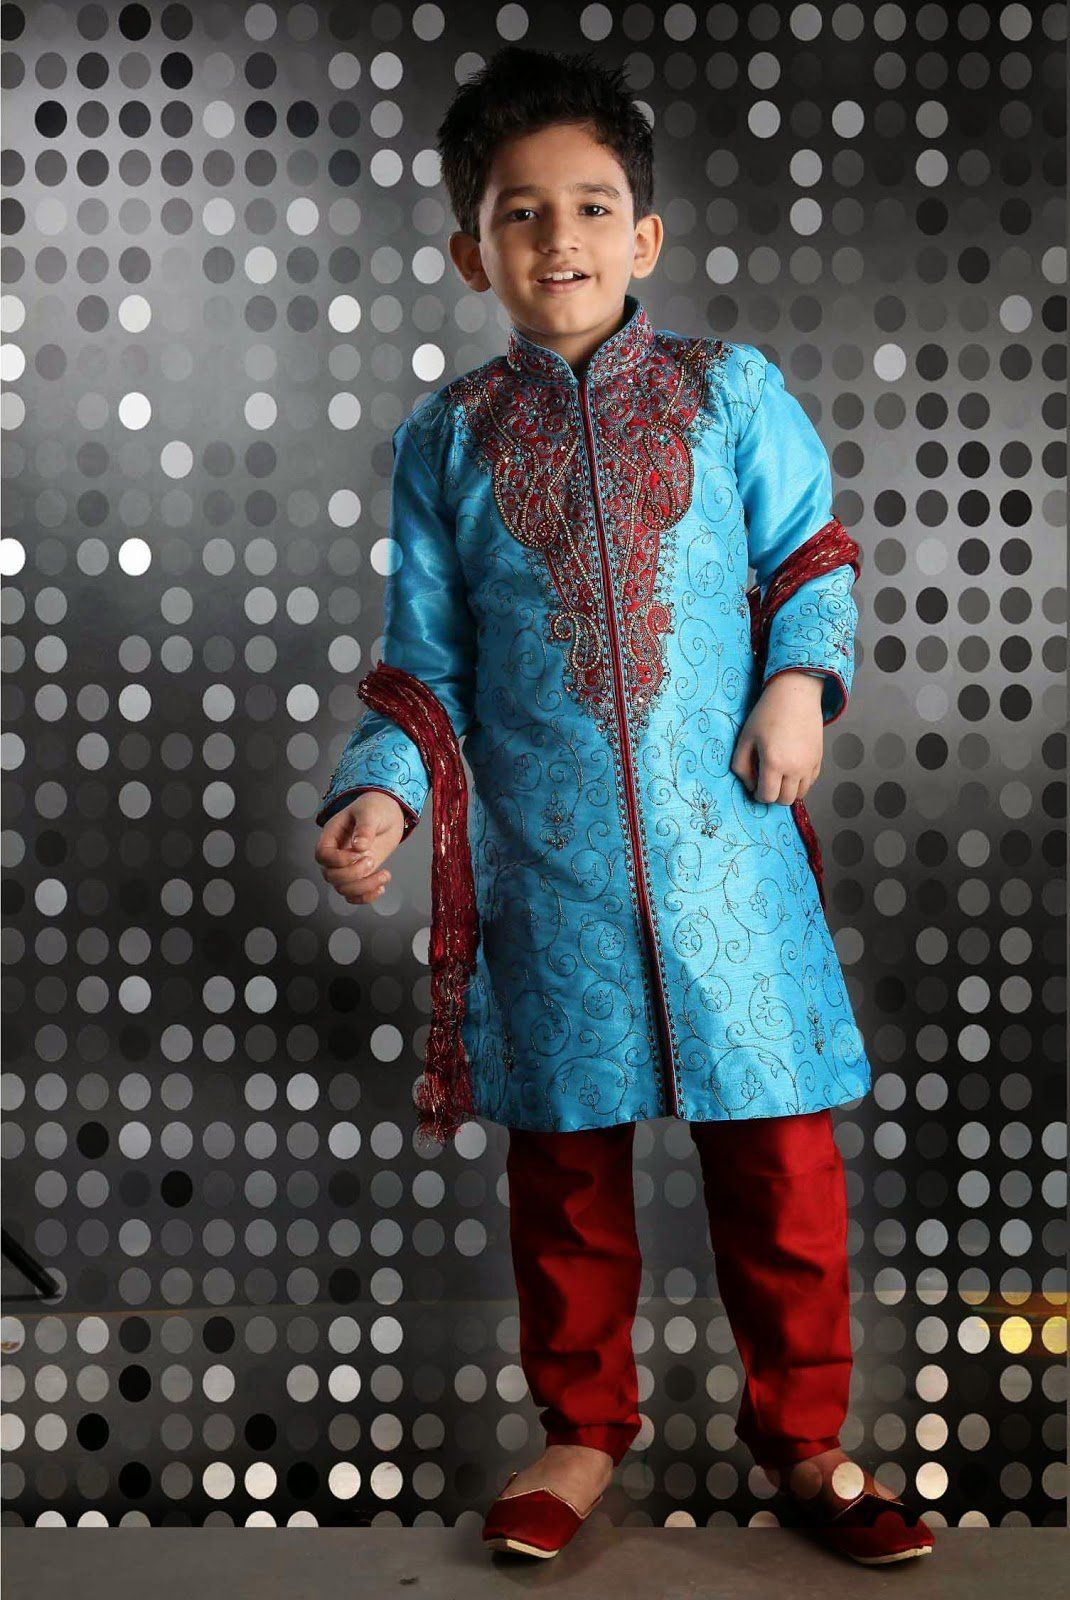 Flamboyant Azure Blue Kids Boys Wear - LXVN070D0190B | Indian Trendz ...